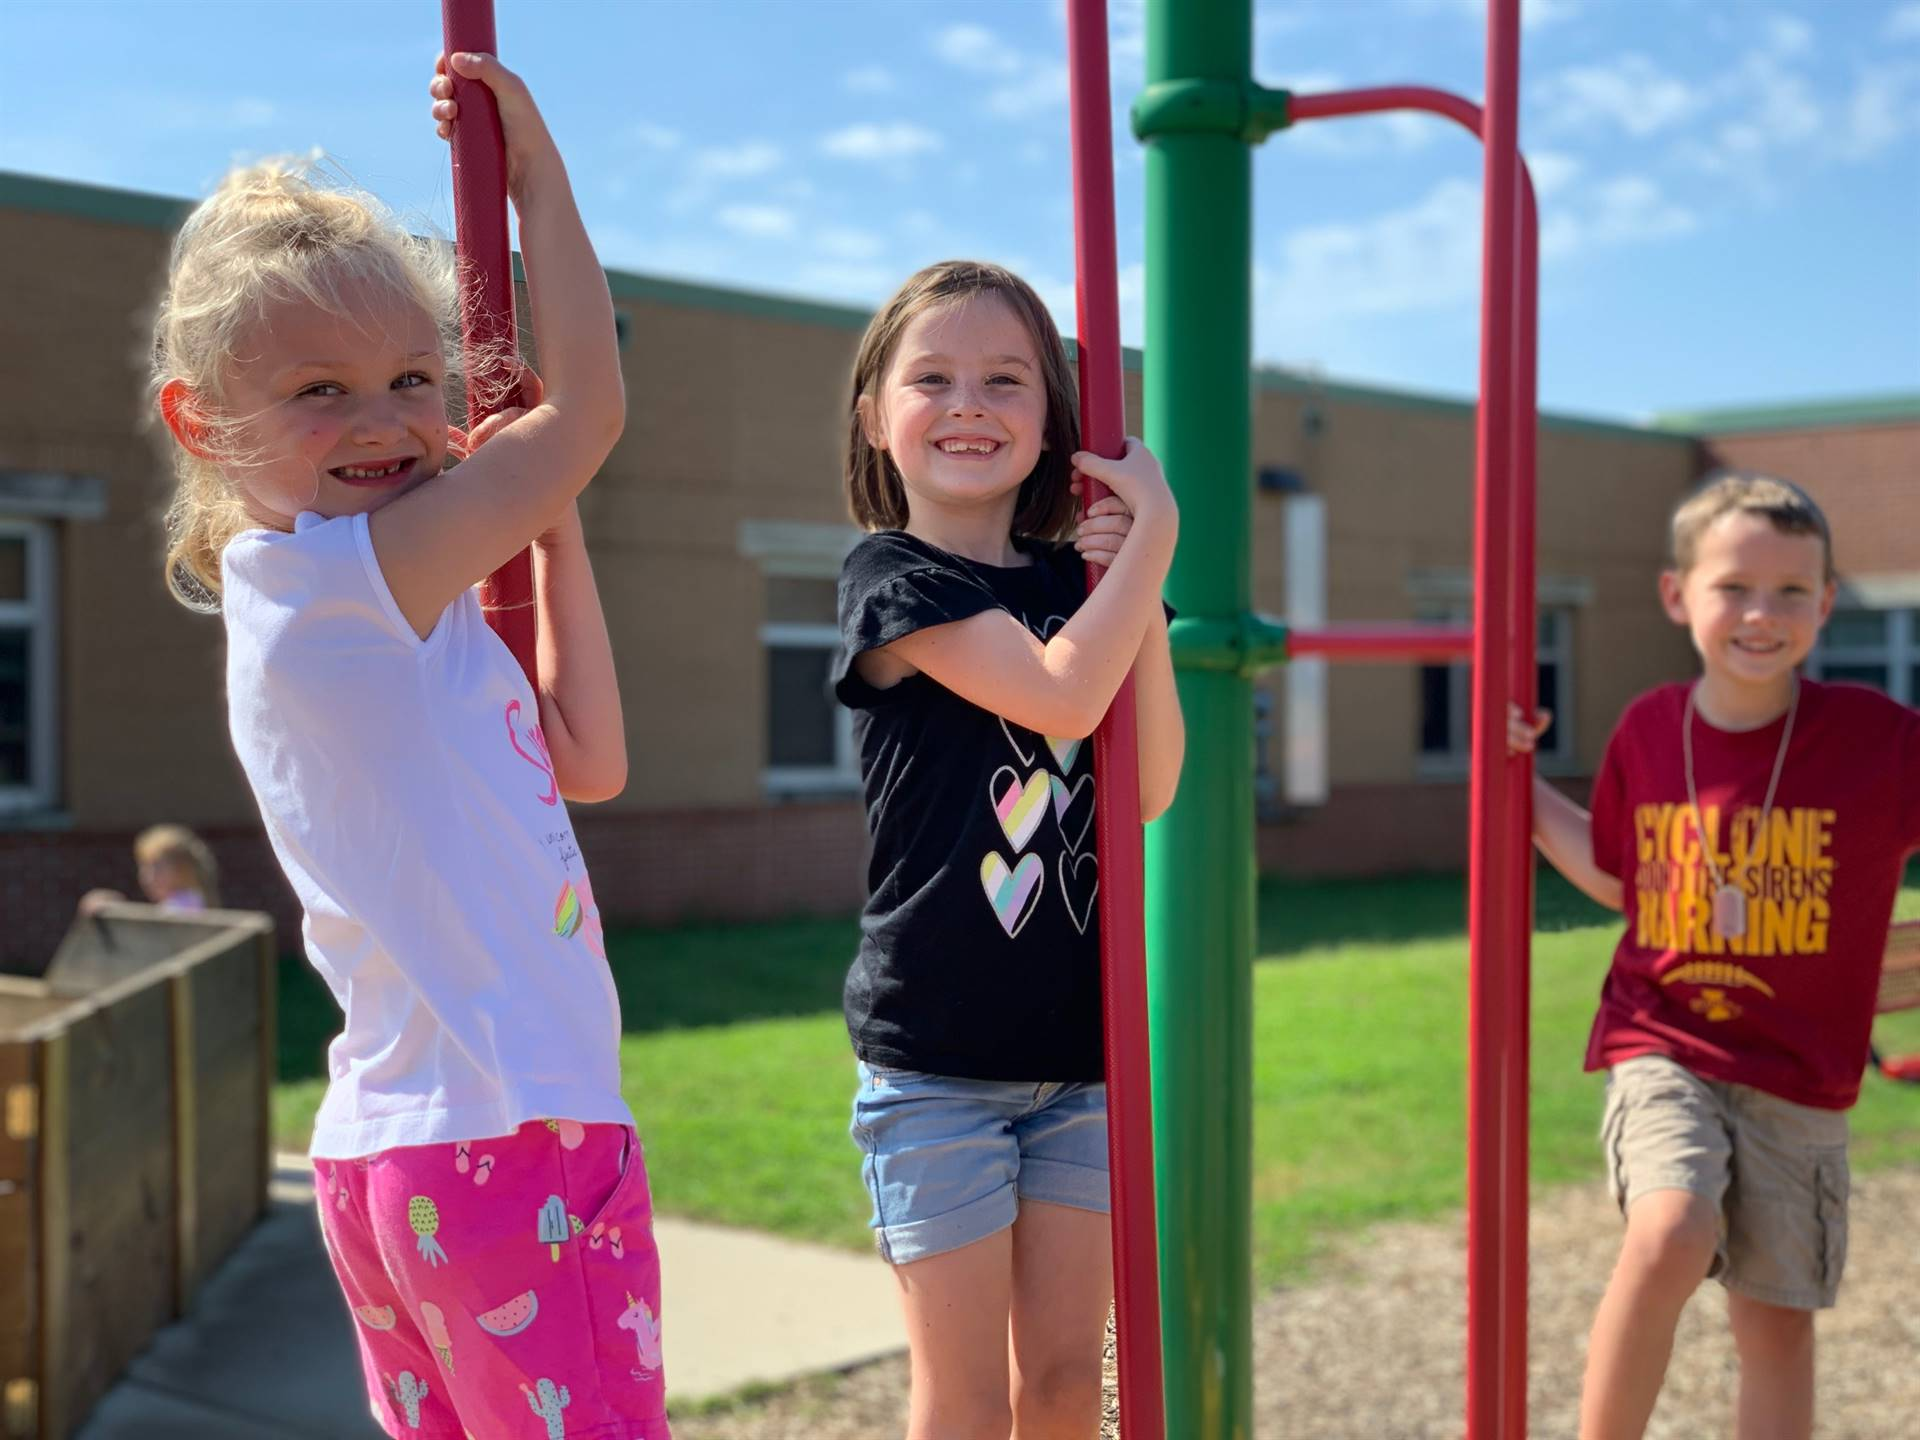 Students enjoying playing outside during recess